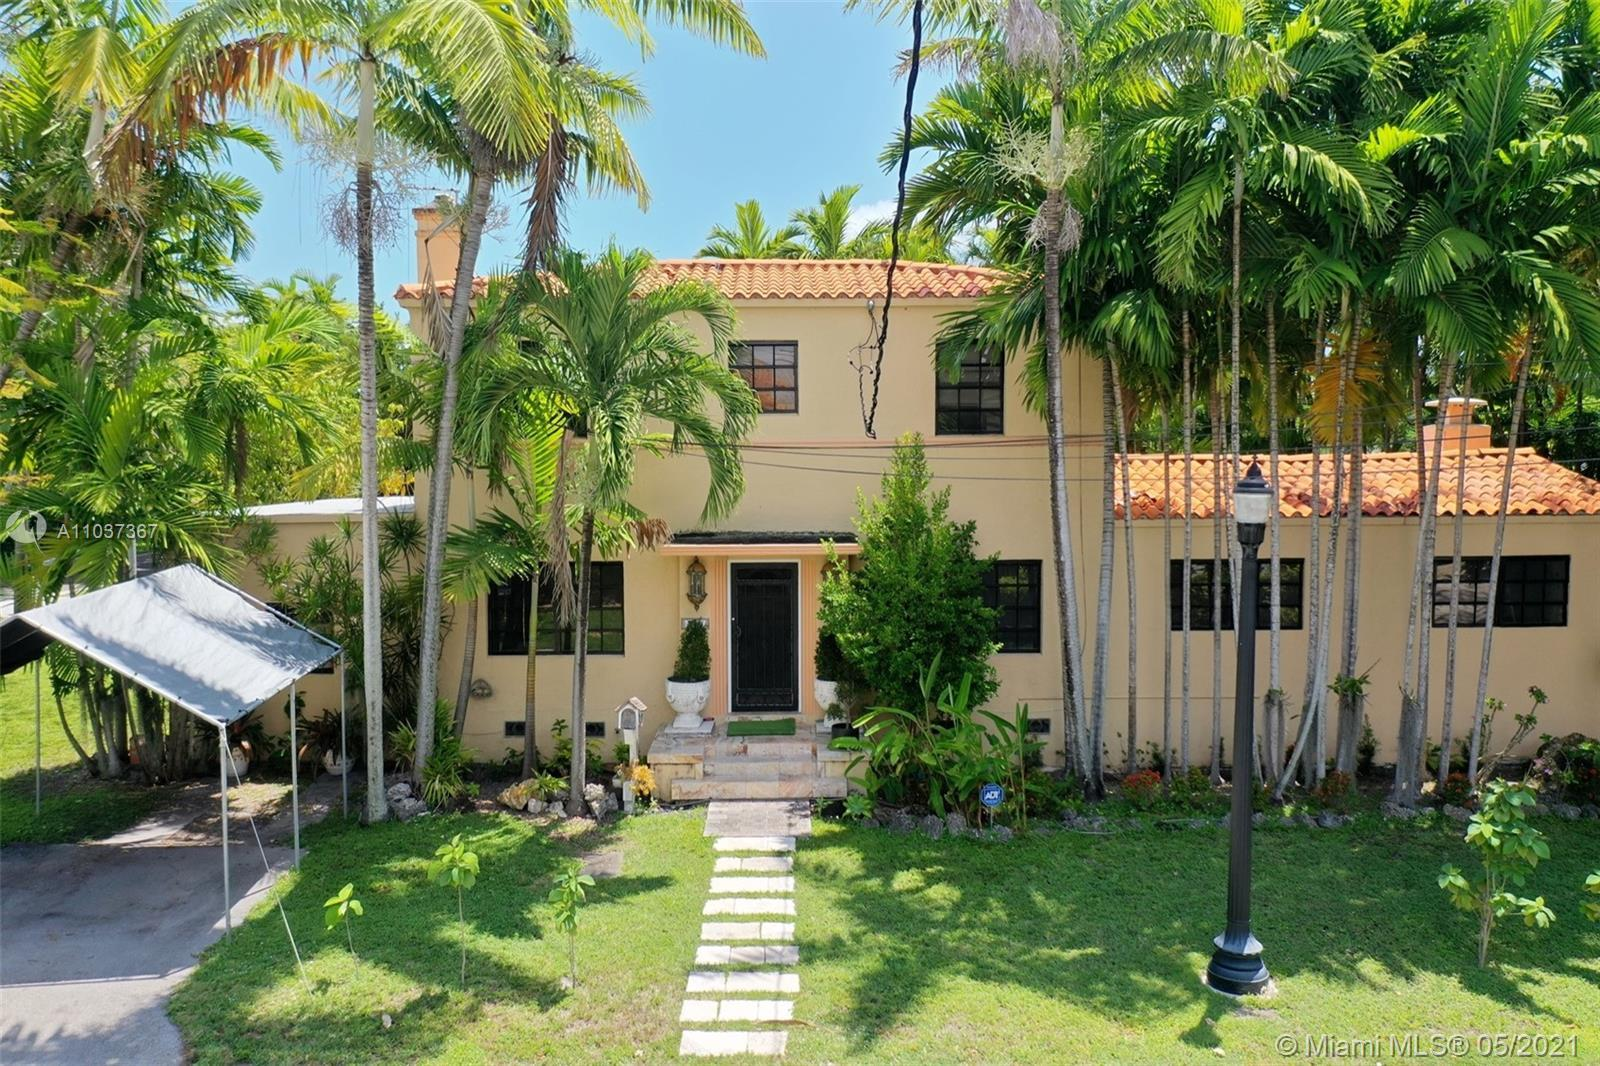 PLEASE DO NOT DISTURB OWNER! Selling for LOT VALUE. Beautiful 7,200 Sq.Ft corner lot located on the